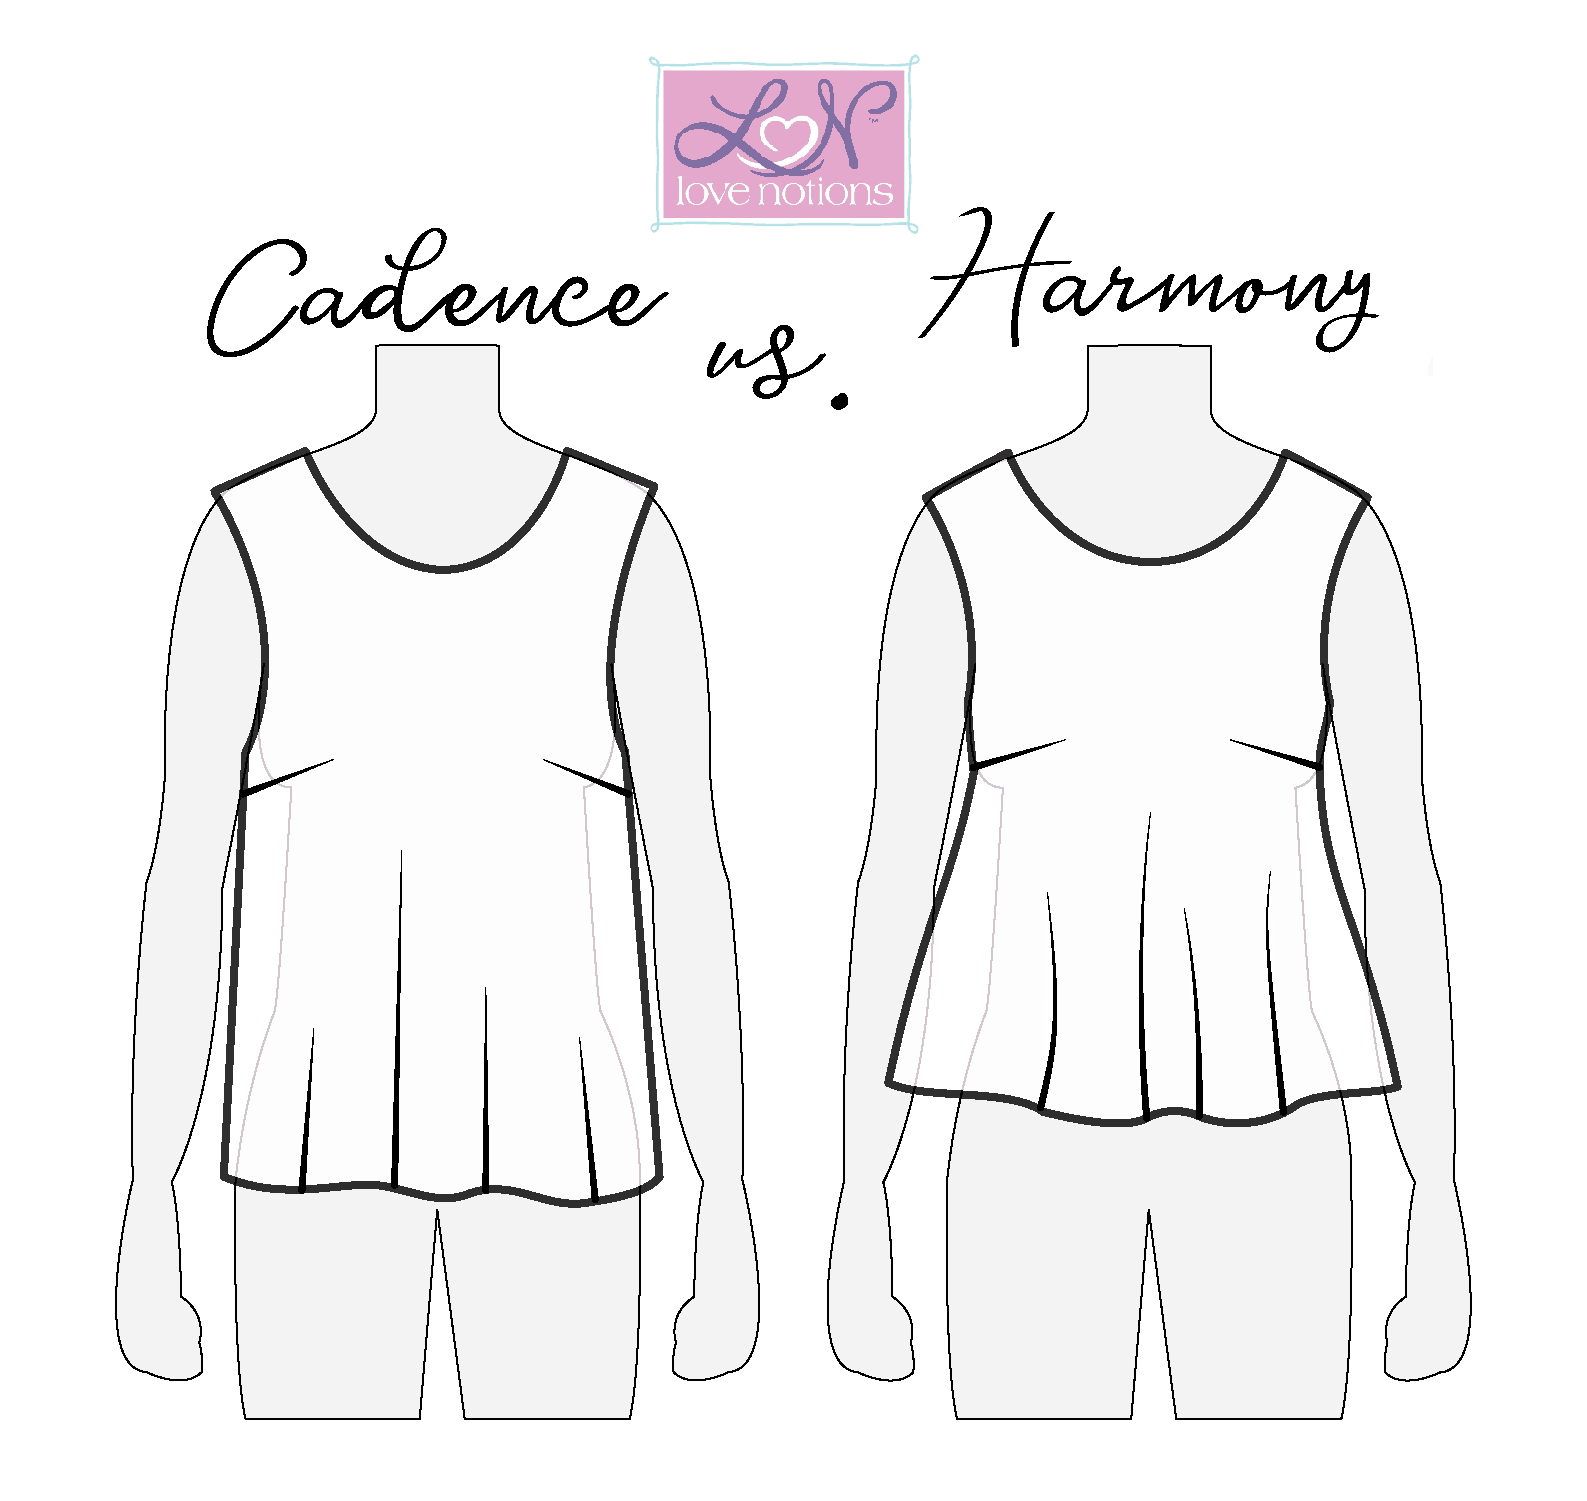 Cadence and Harmony, what's the difference?